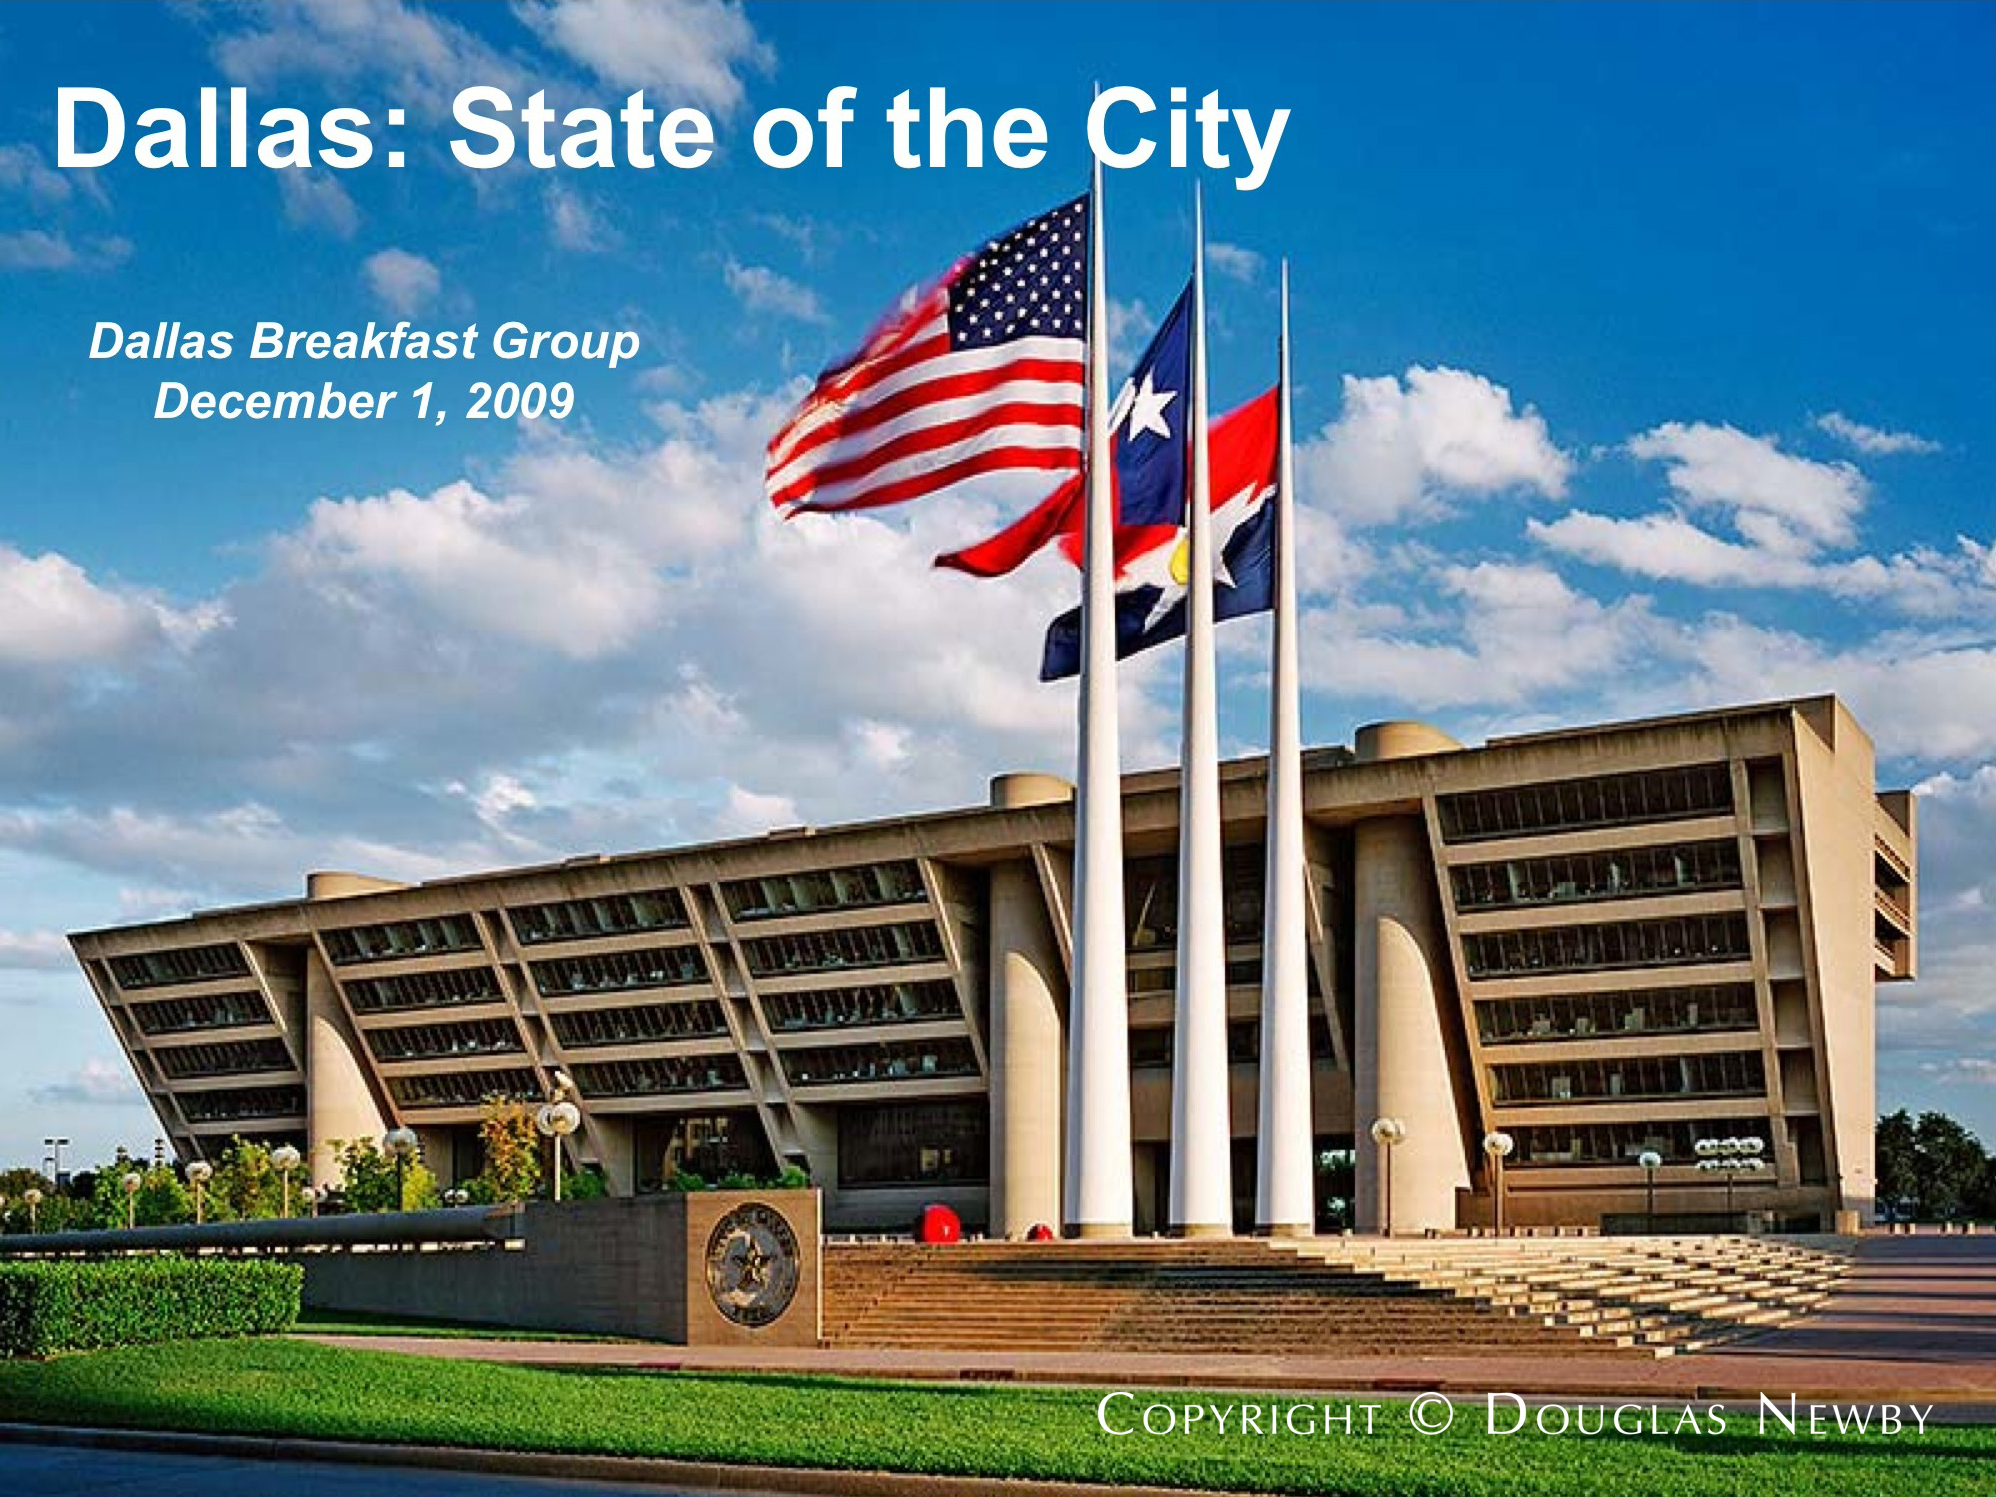 City Manager, Mary Suhm, Addresses Dallas Breakfast Group